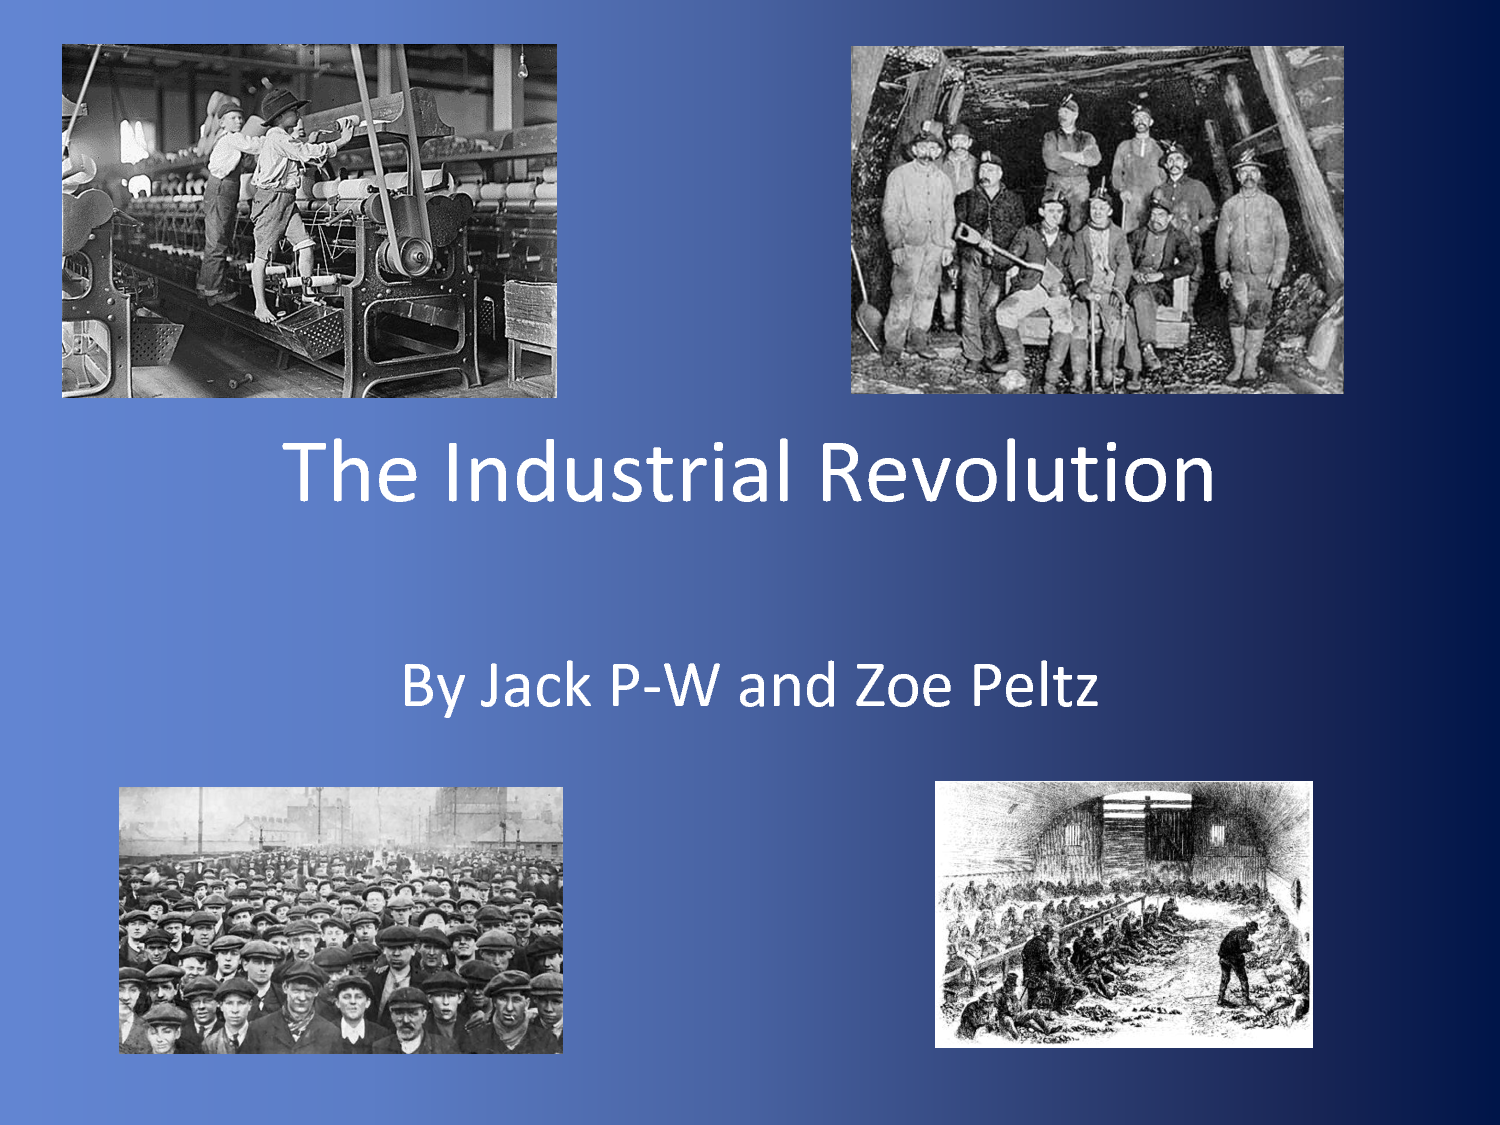 industrial revolution positive change Get information, facts, and pictures about industrial revolution at encyclopediacom make research projects and school reports about industrial revolution easy with credible articles from our free, online encyclopedia and dictionary.